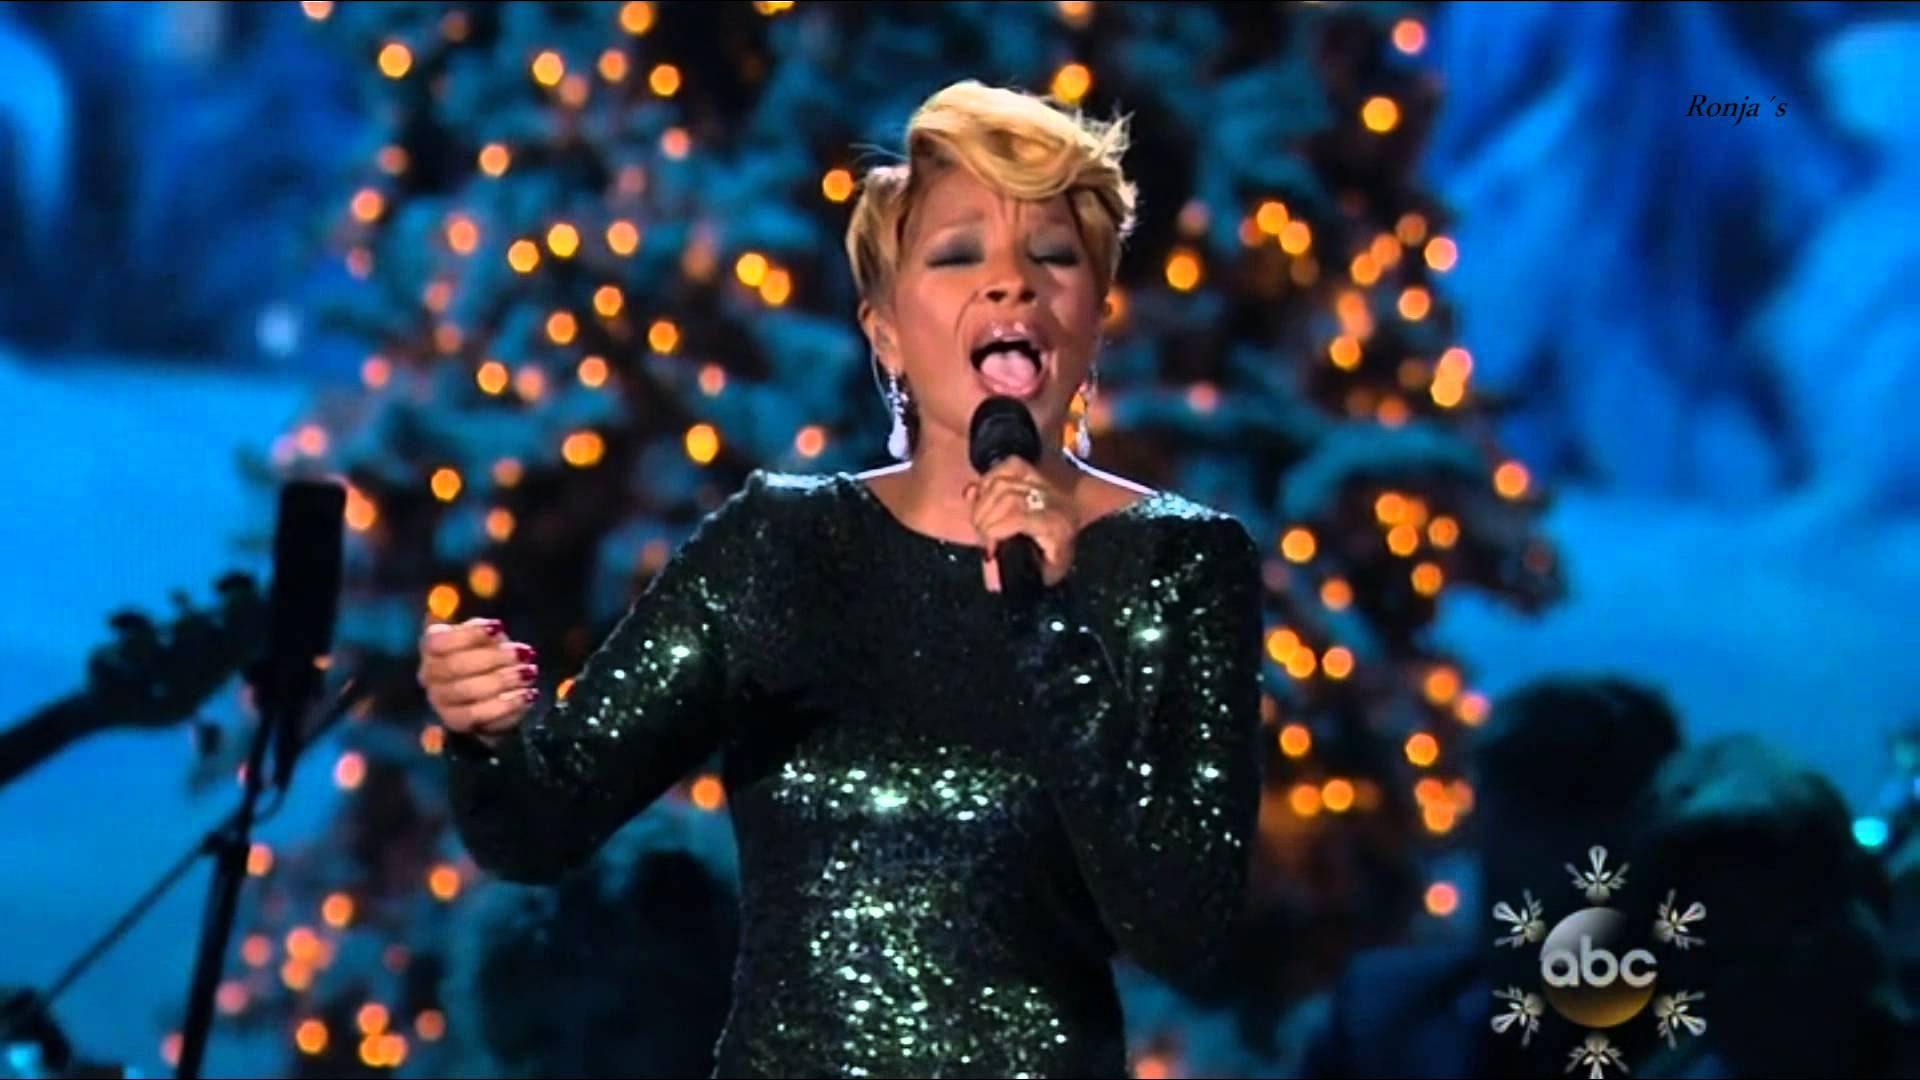 mary j blige quothave yourself a merry little christmas